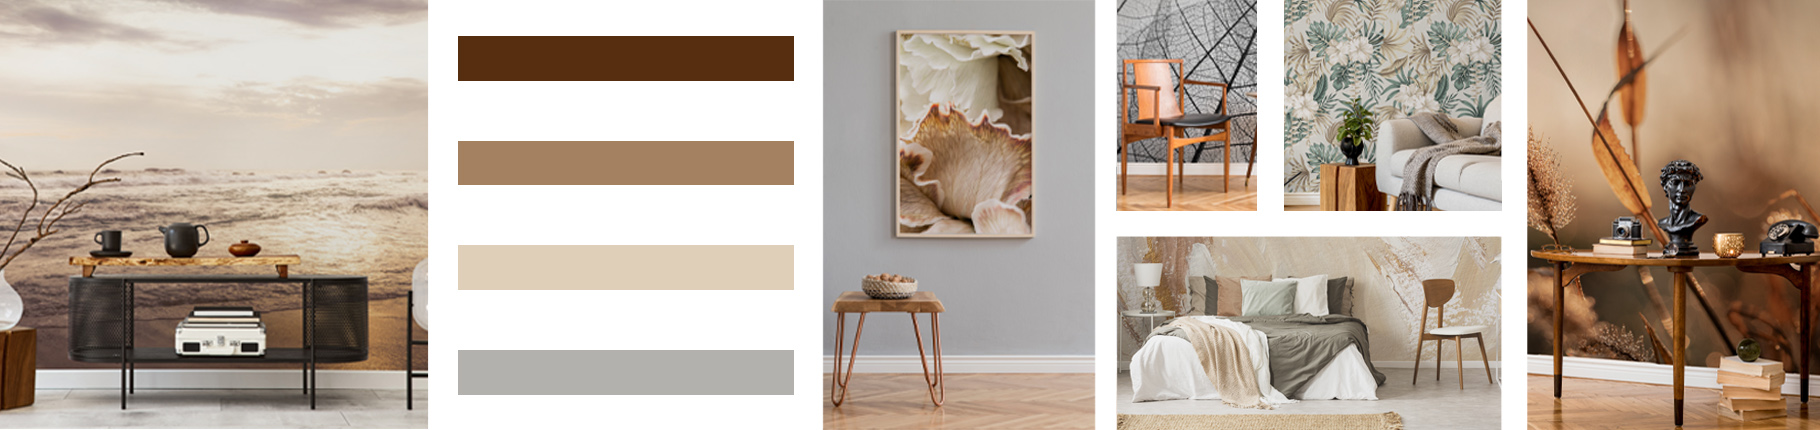 How to choose a wall decoration?